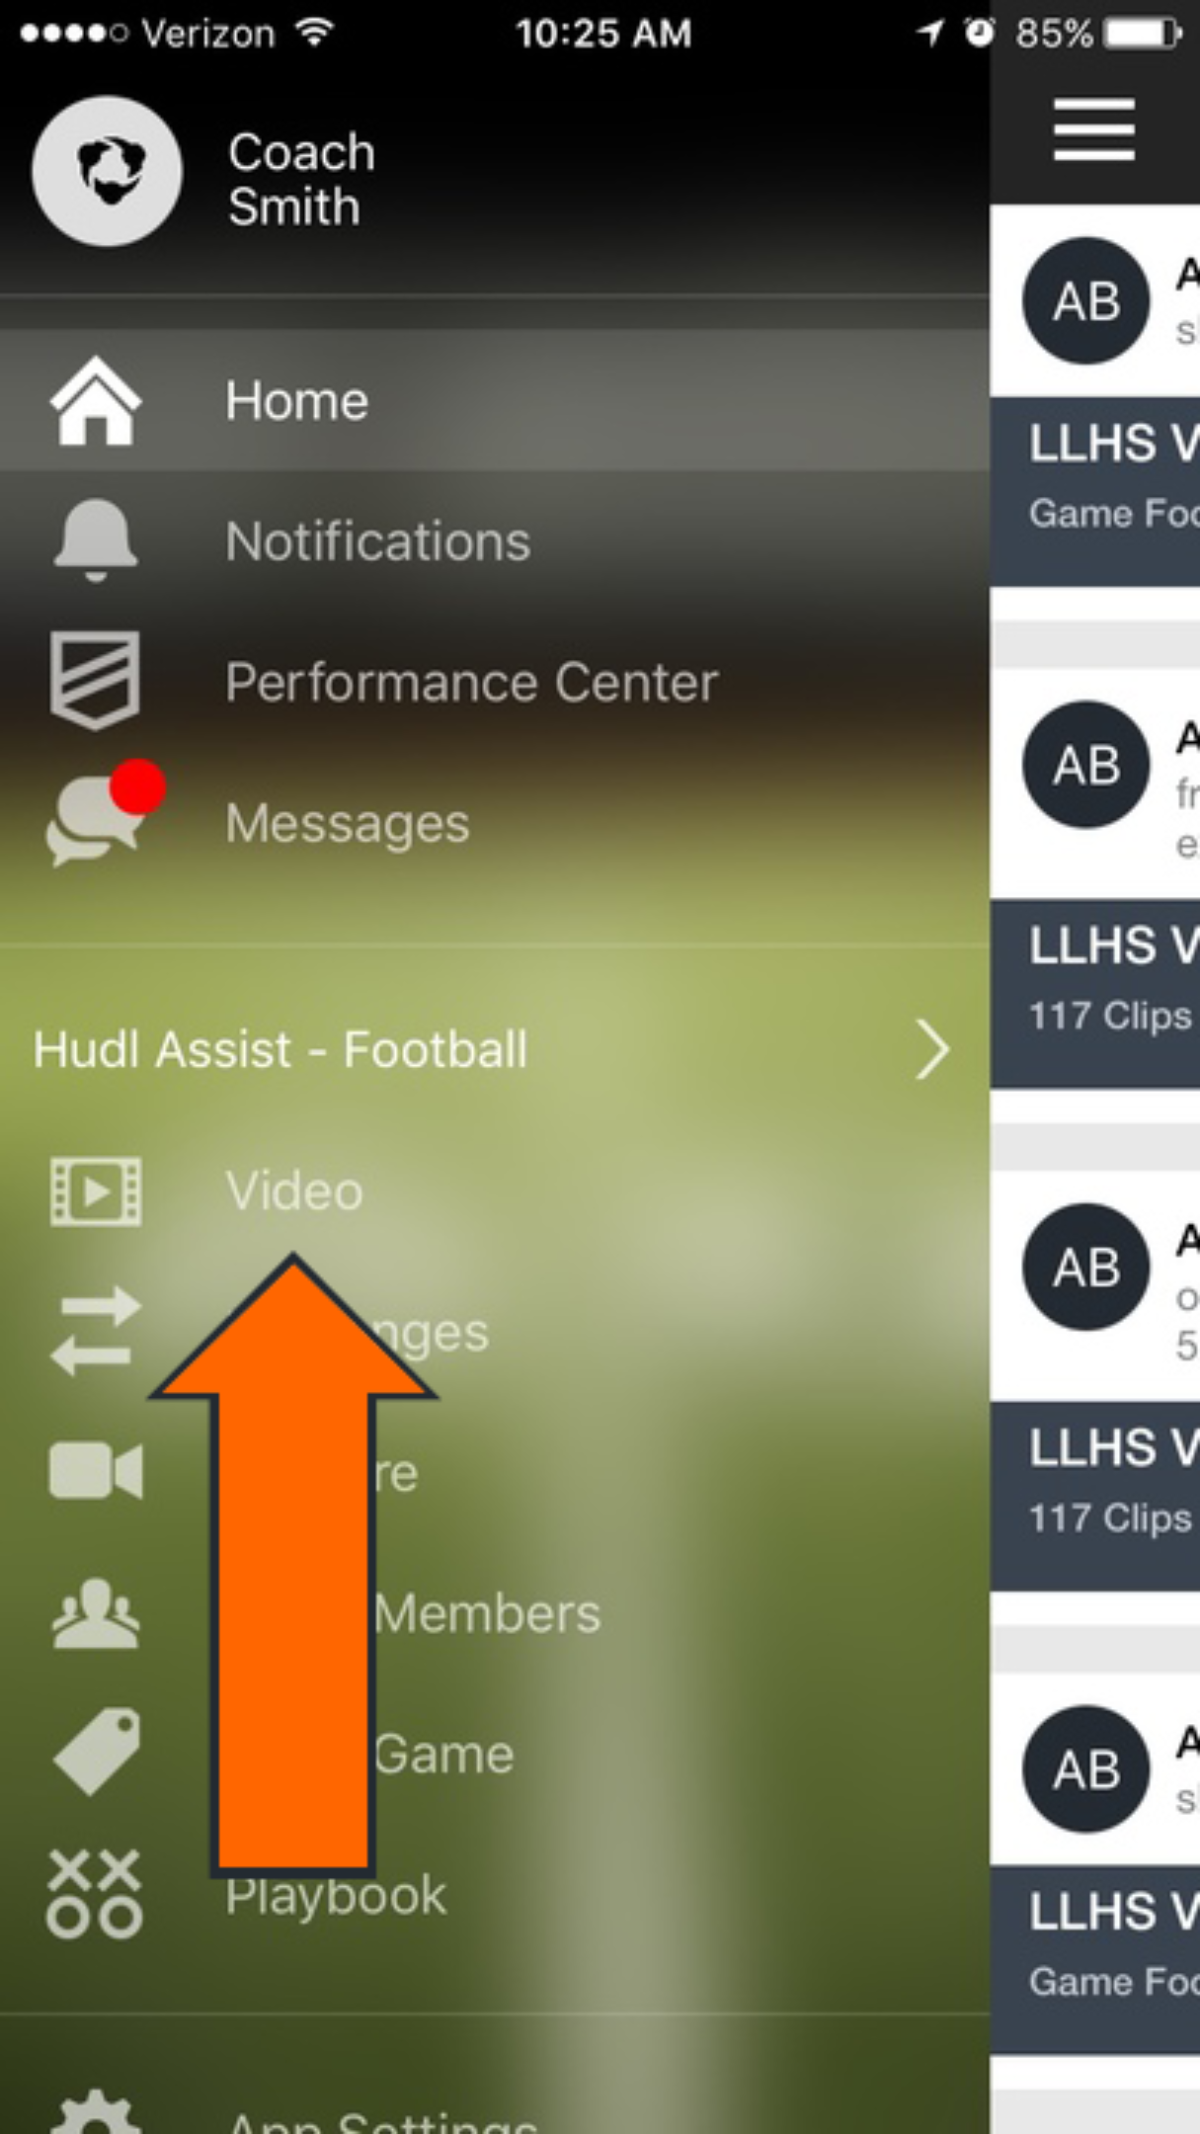 Ru customer account/downloader - Log In To The Hudl App And Tap Video